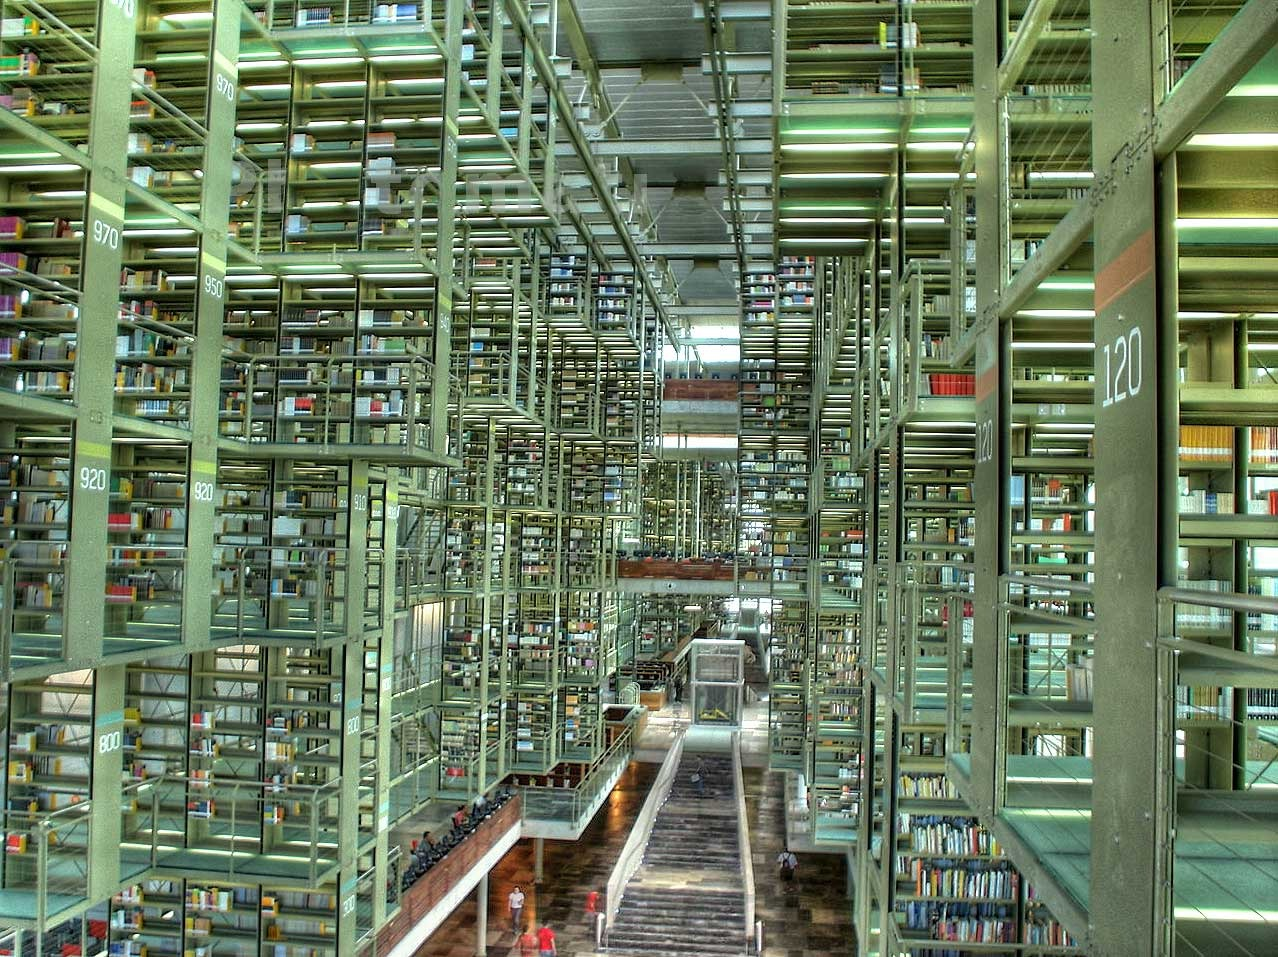 Another view of the Jose Vasconcelos Library in Mexico City. It is the only library in the world composed of hanging stands which are supported by its ceiling.